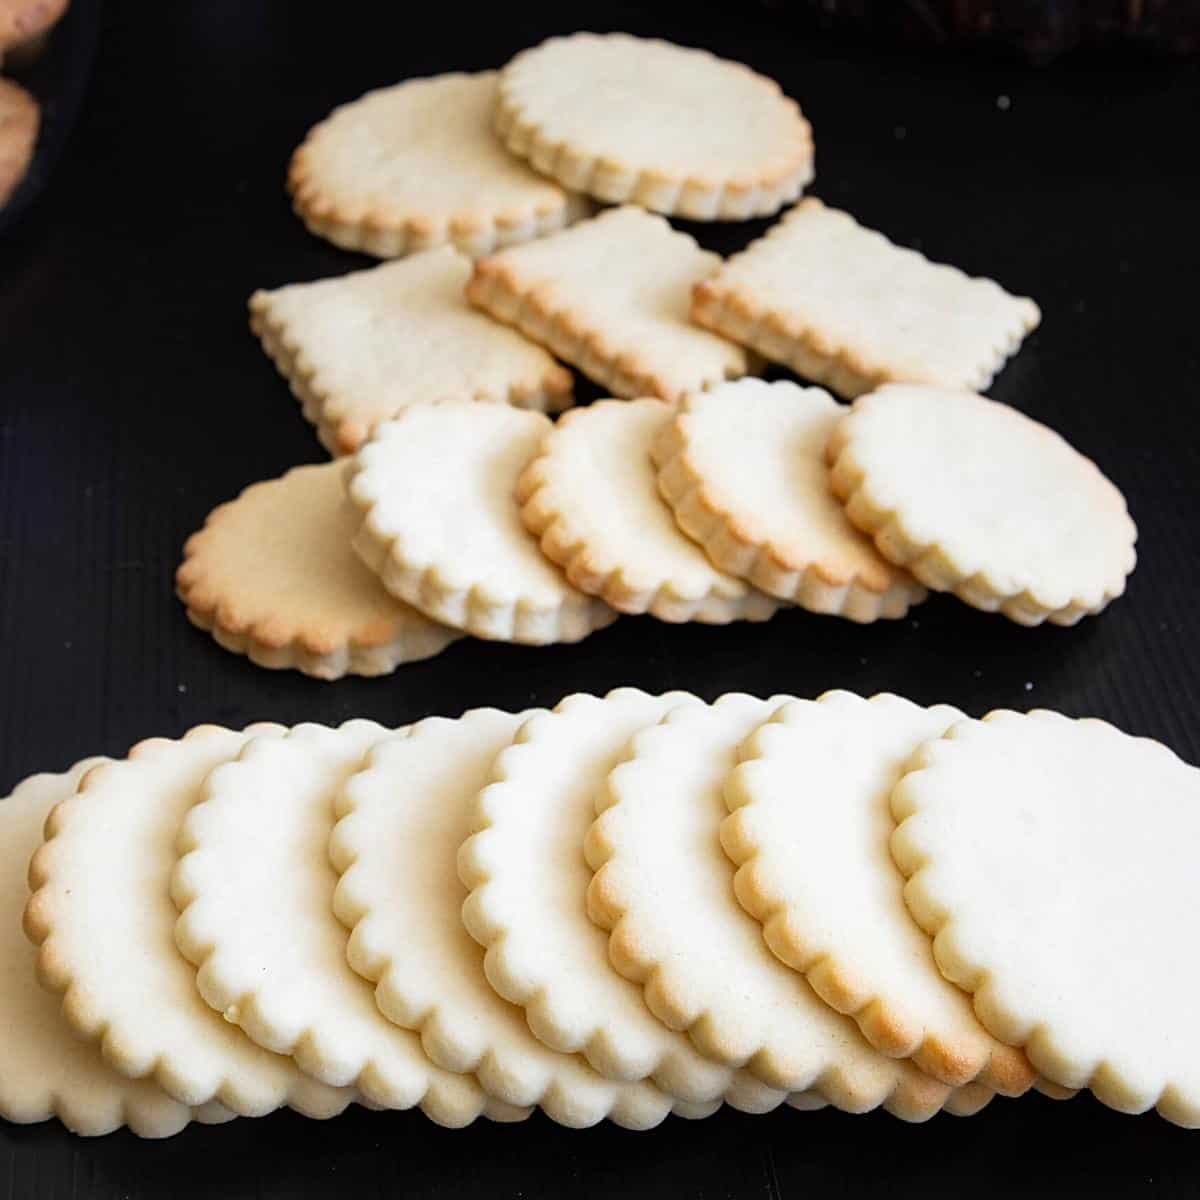 Cookies spread on a table.